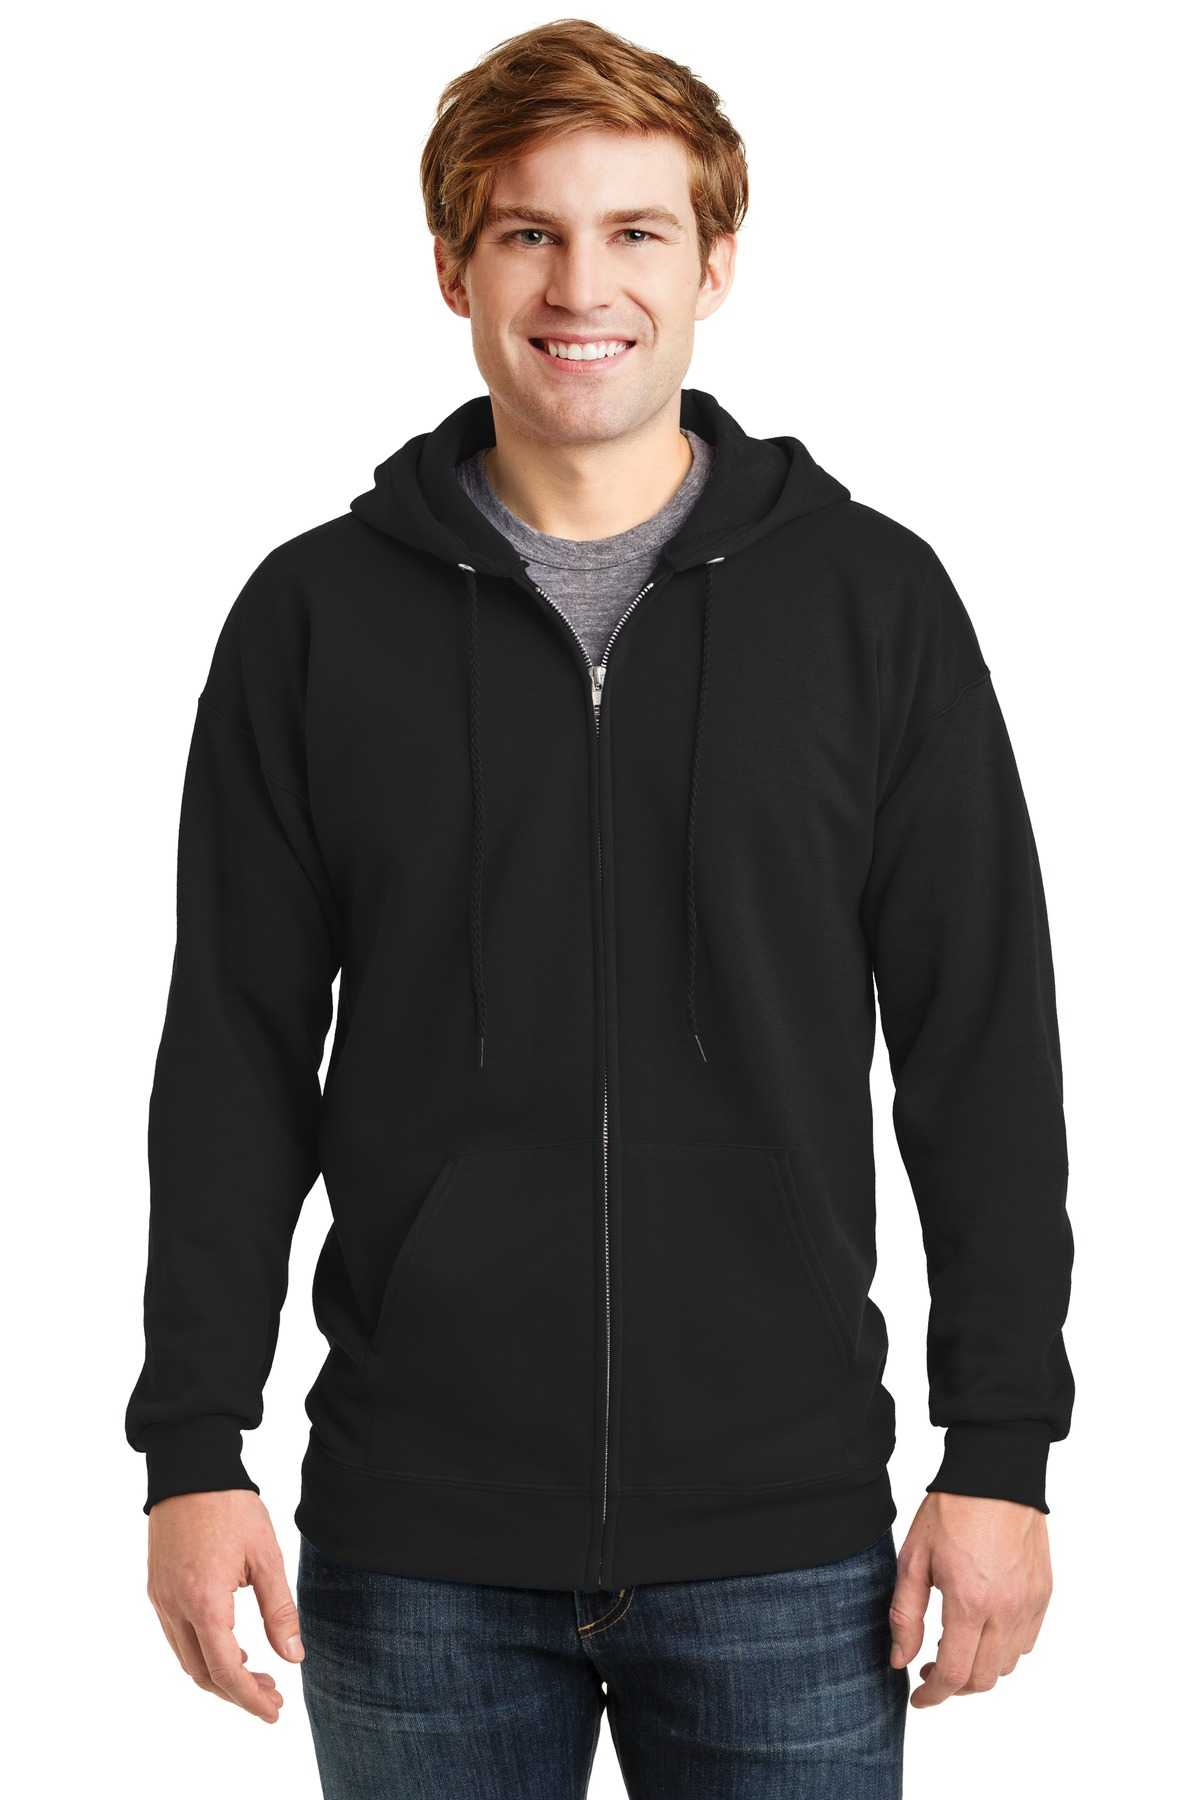 Hanes ®  Ultimate Cotton ®  - Full-Zip Hooded Sweatshirt.  F283 - Black